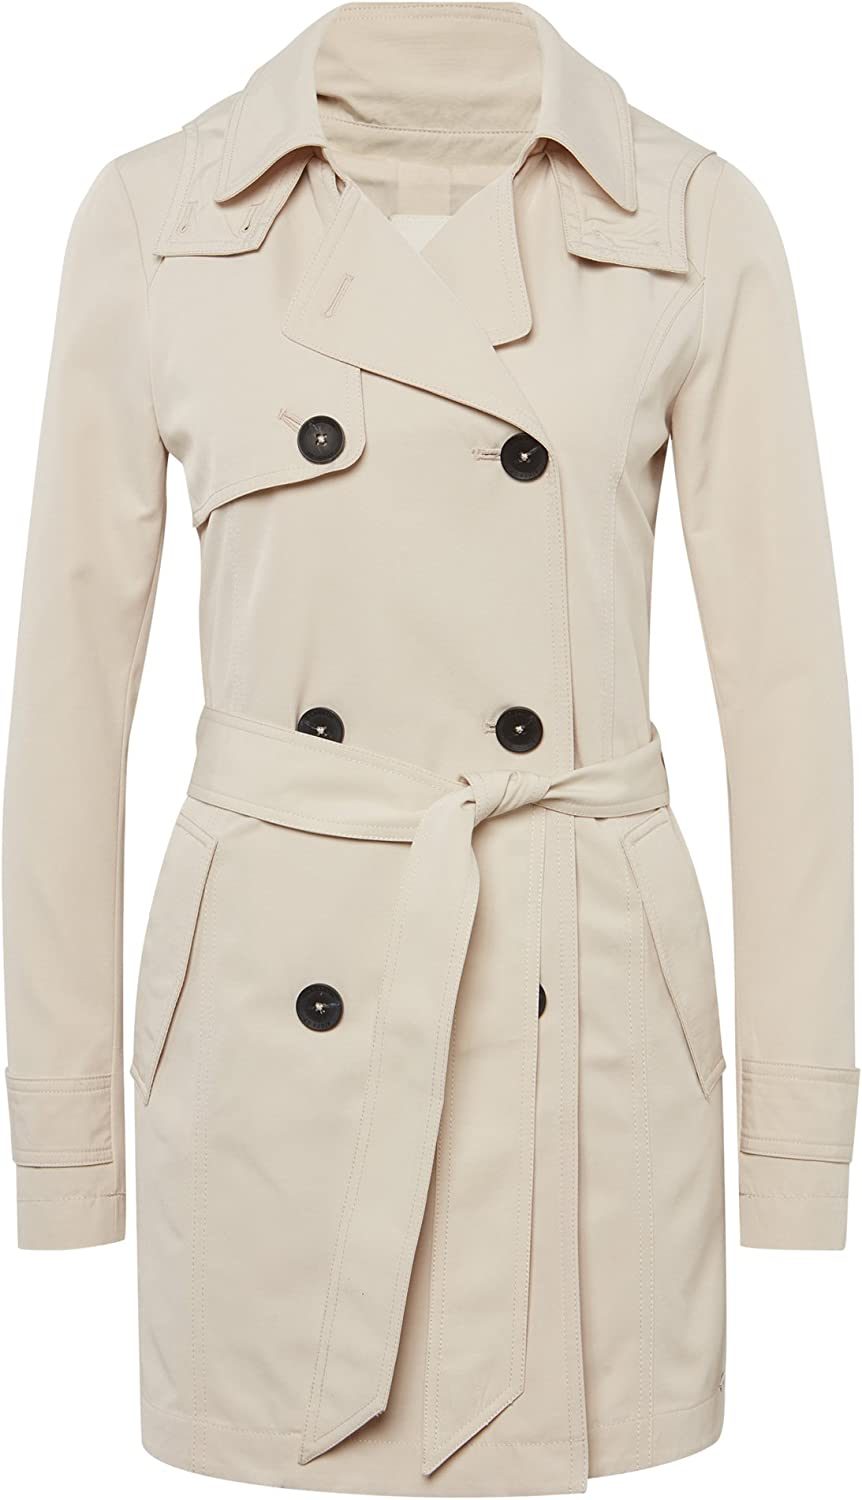 Tom Tailor Trench Coat Giubbotto Donna